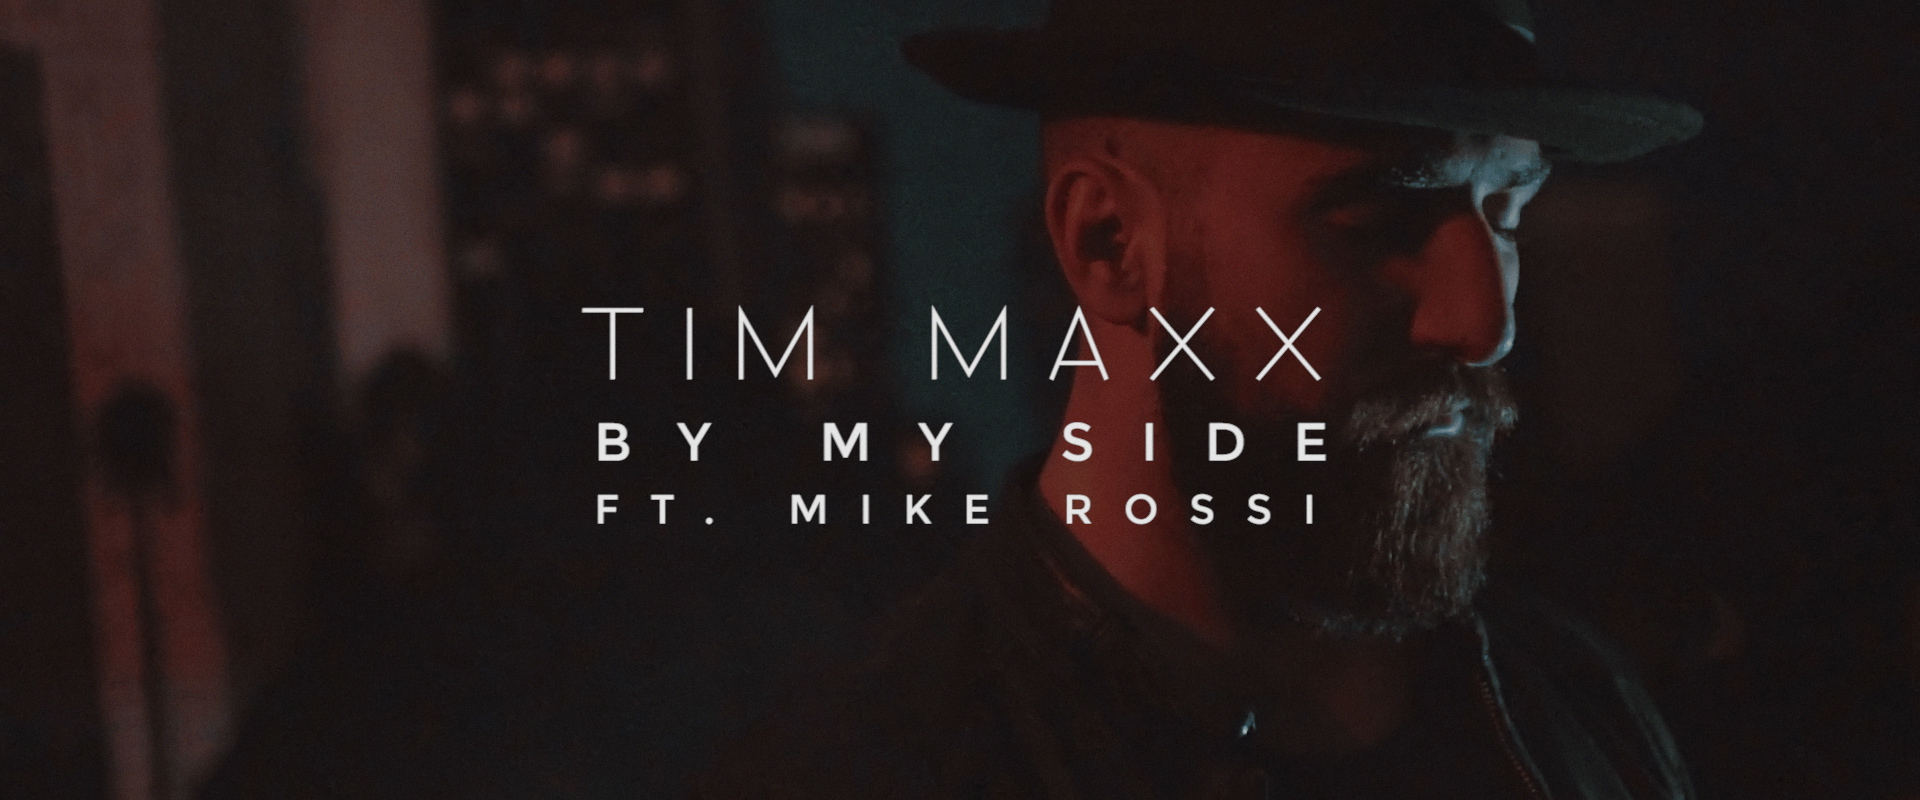 Tim Maxx (ft Mike Rossi) - By My Side